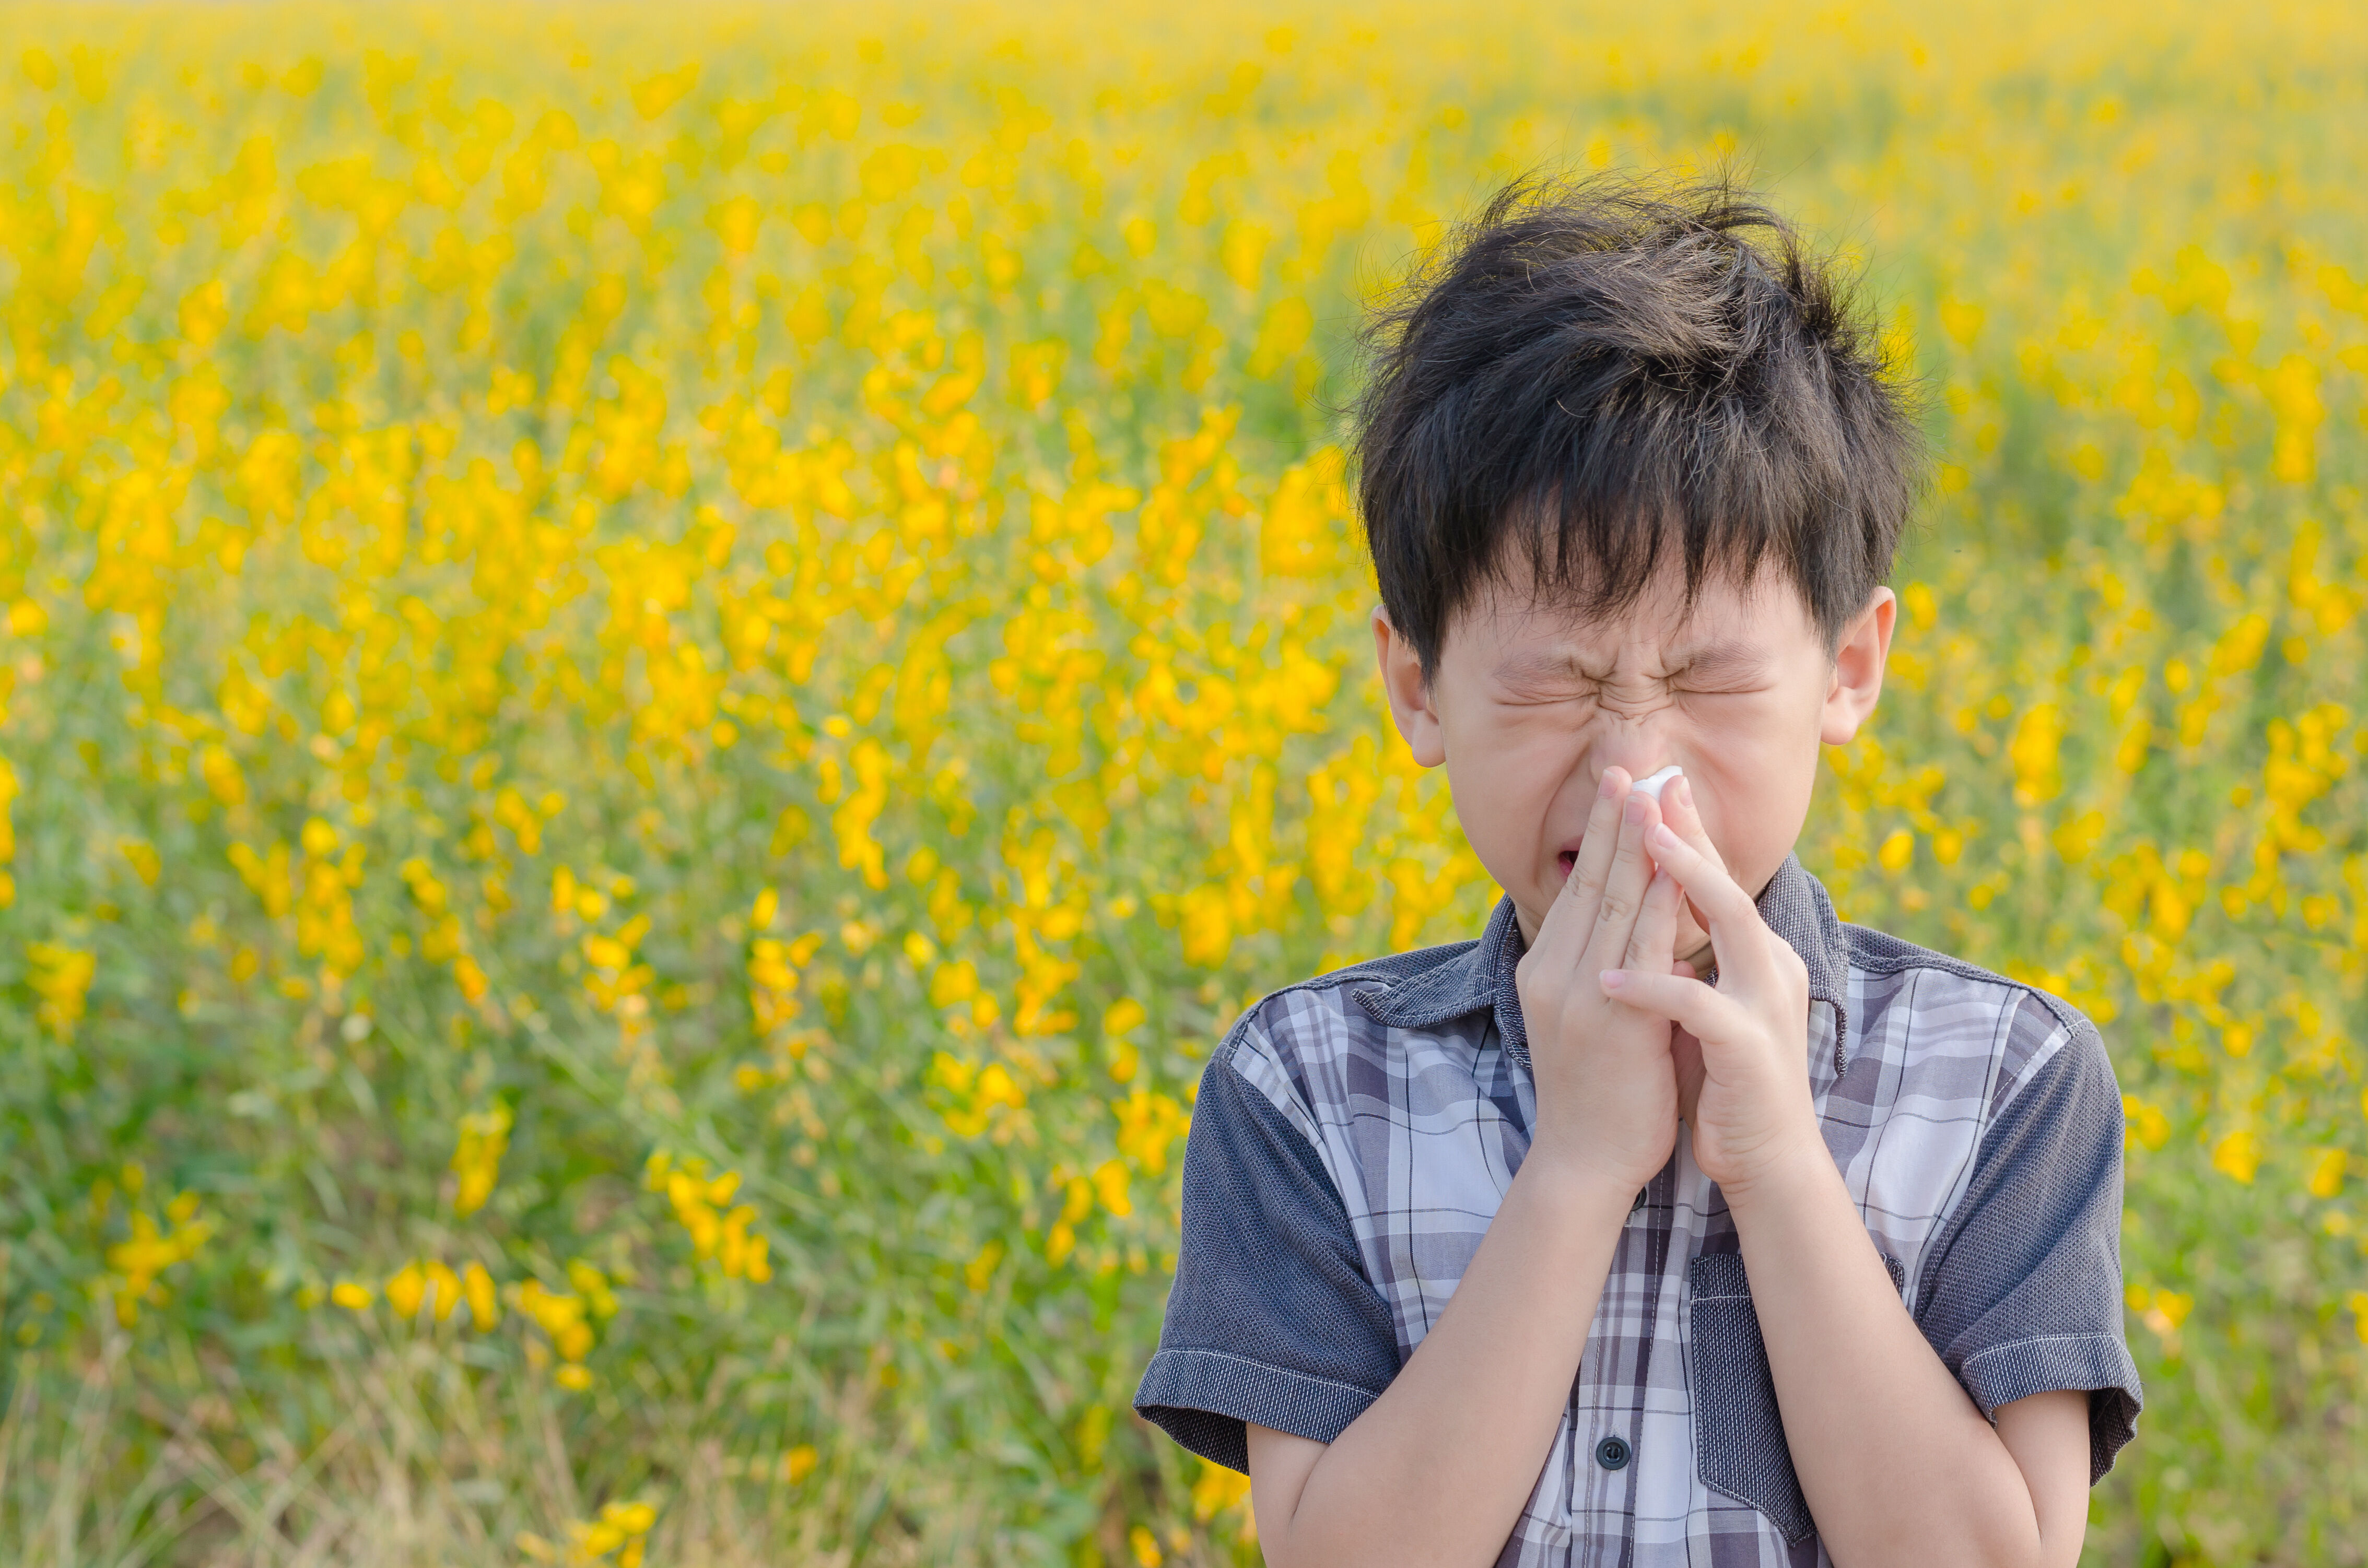 Allergic child sneezes in a field with flower